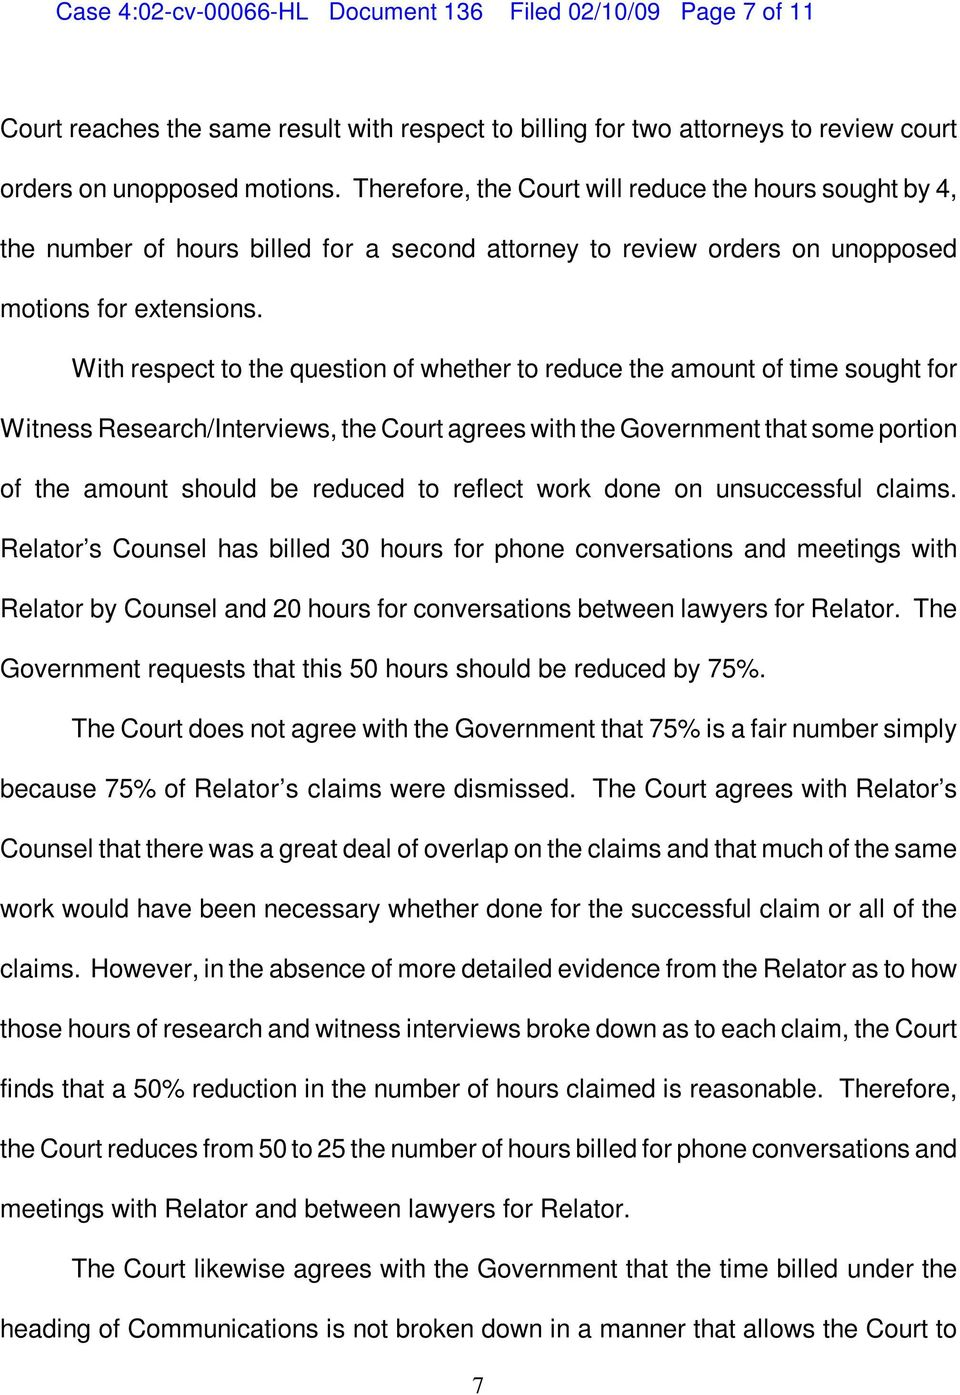 With respect to the question of whether to reduce the amount of time sought for Witness Research/Interviews, the Court agrees with the Government that some portion of the amount should be reduced to